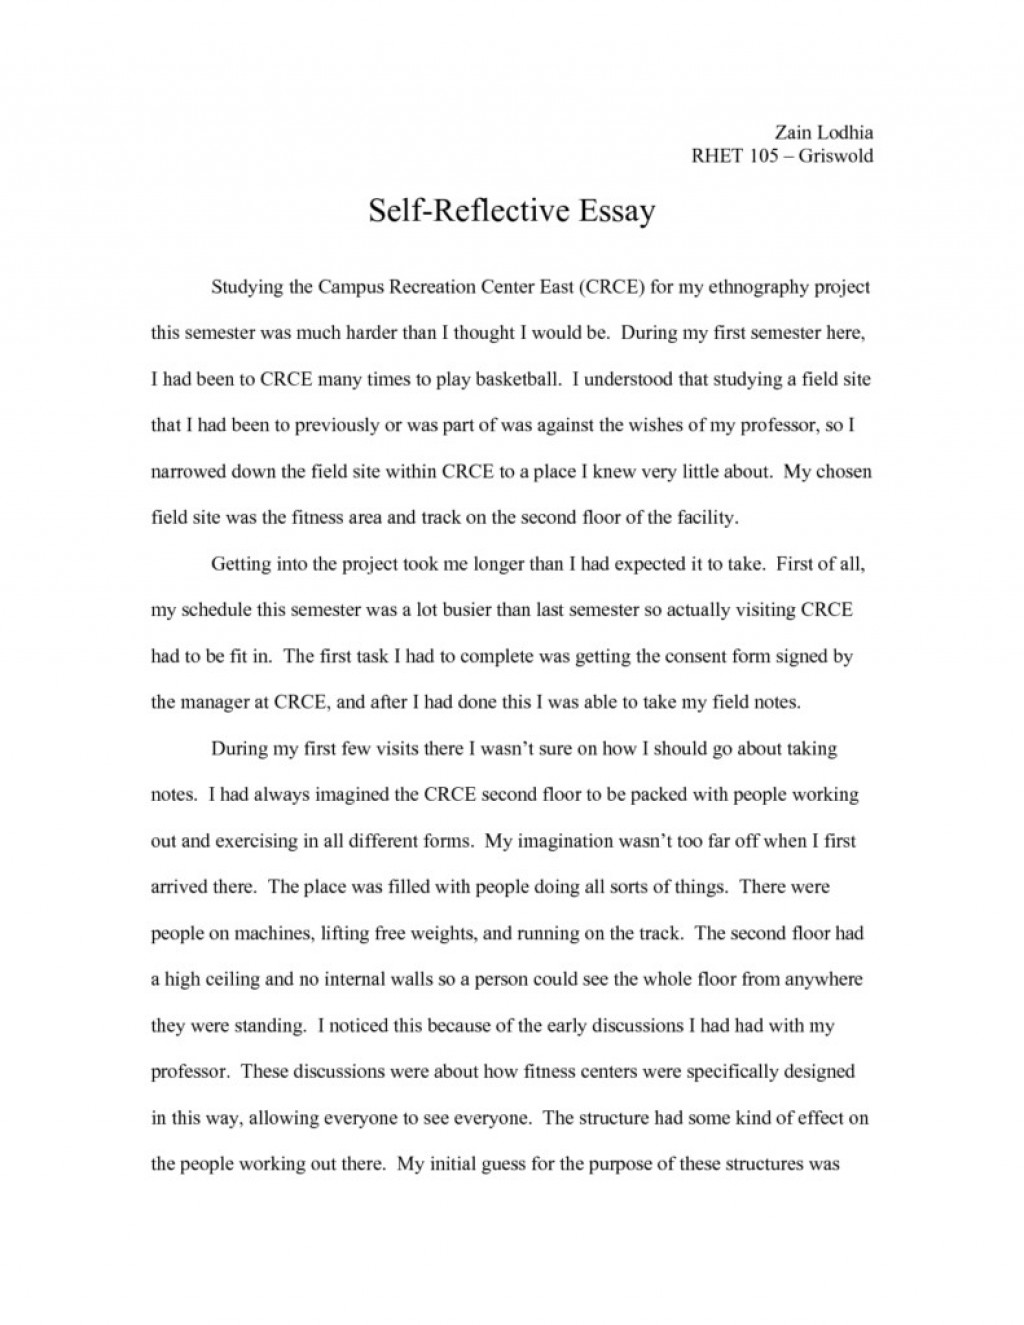 002 How To Write Reflective Essay Writing Essays Examples Smart Portray Of Self Reflection About Me Example Marvelous A Introduction On Book Do You Large